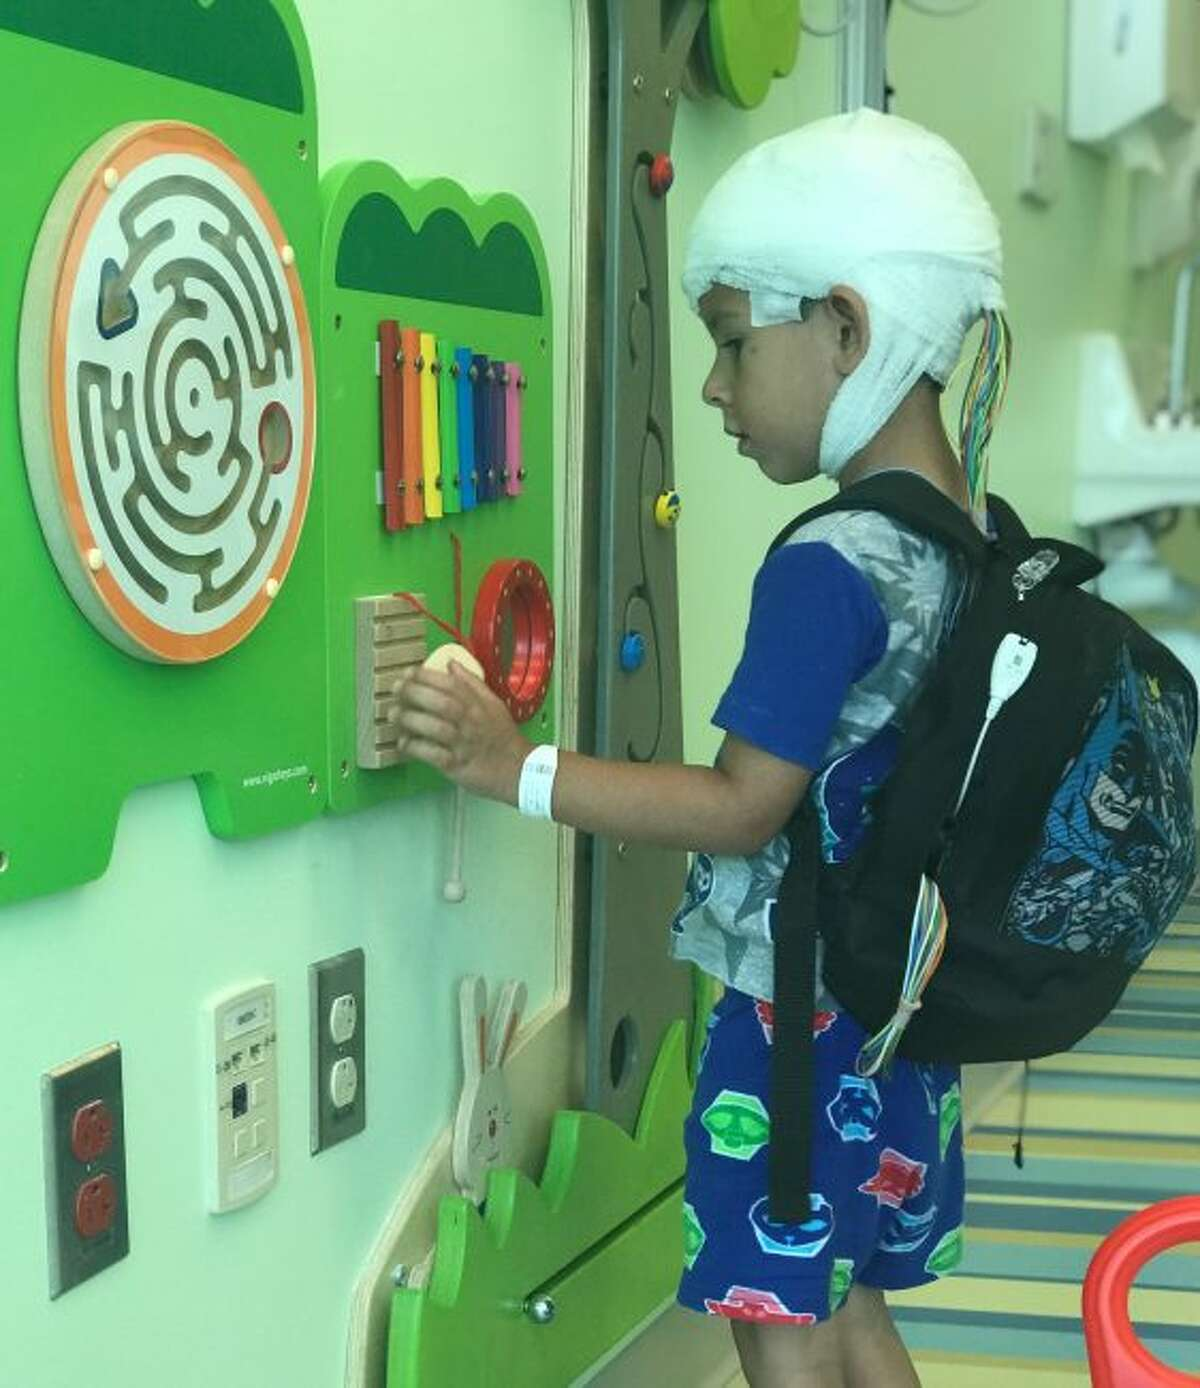 Cash Taylor, 4, plays with toys while being monitored by a new wireless epilepsy monitoring unit at Helen DeVos Children's Hospital. Taylor was one of the first patients to use the new technology.